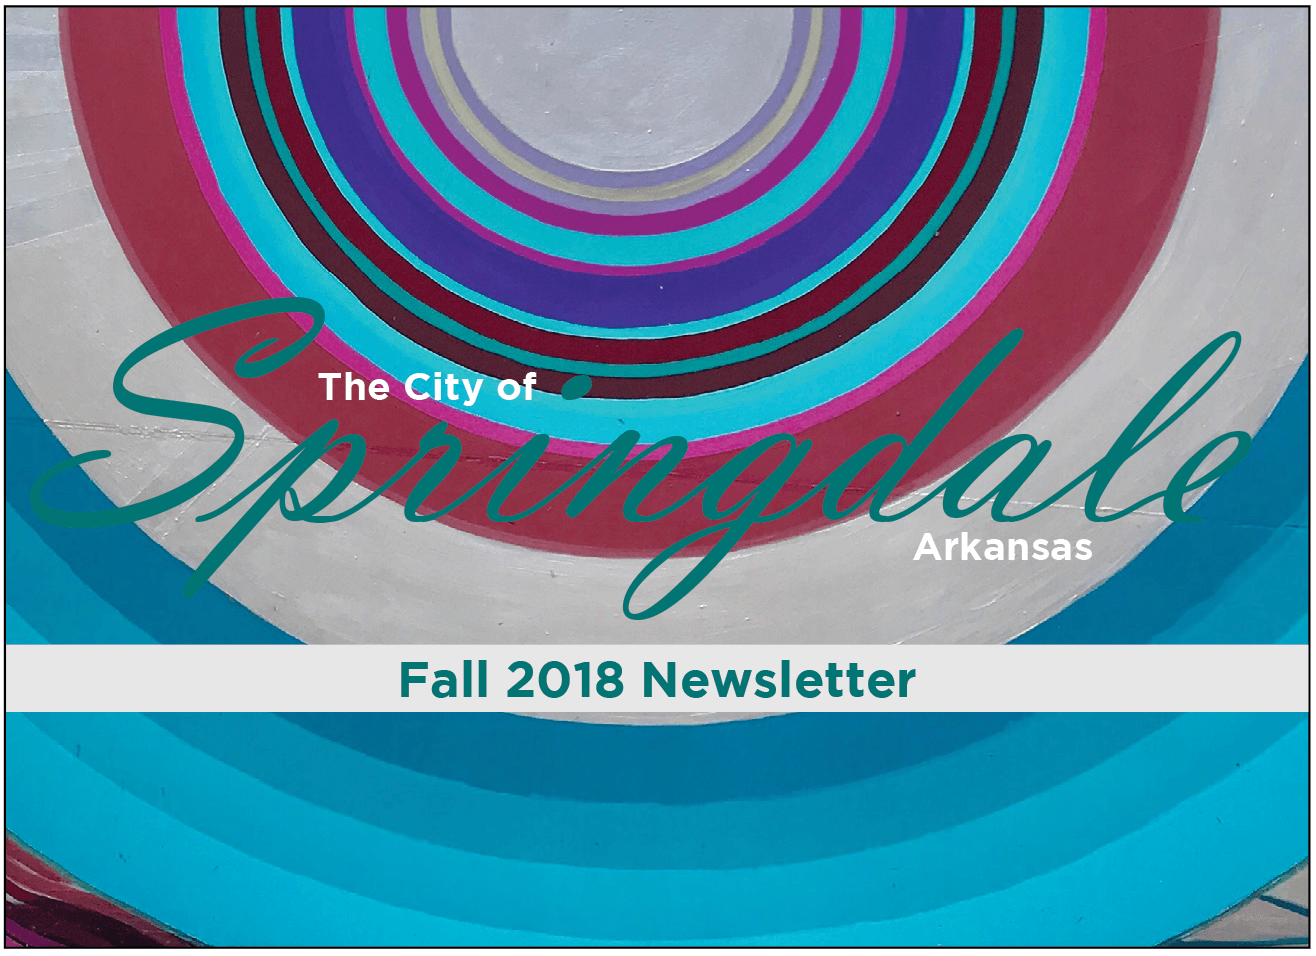 Newsletter image fall 2018